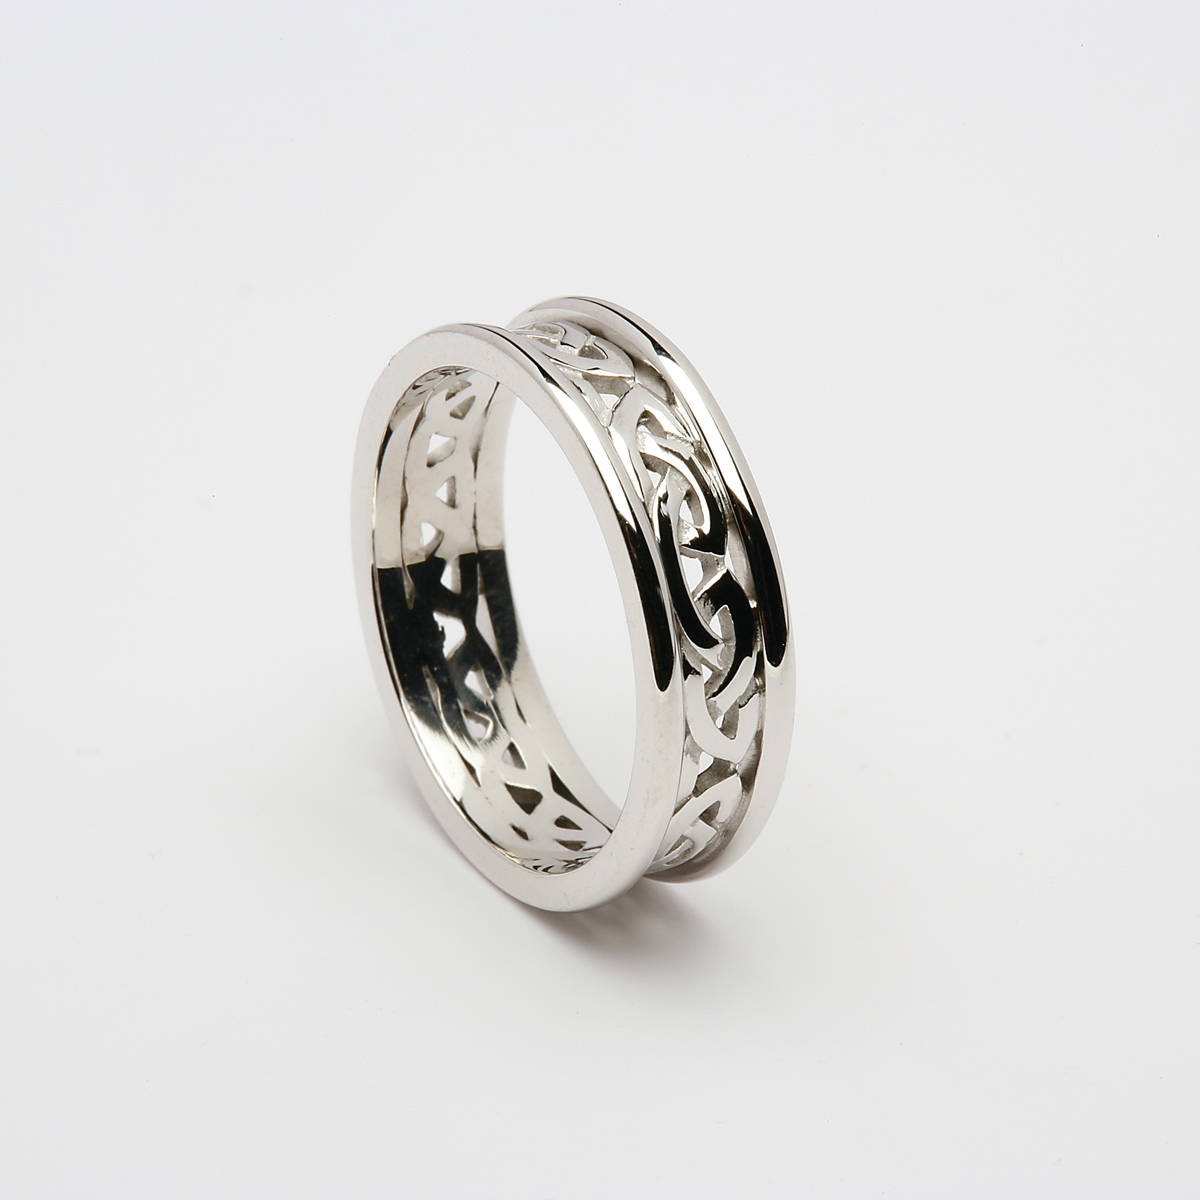 14ct white gold ladies Celtic Open Knot wedding ring with heavy 14ct white gold rims.  Width: 6.1 mm